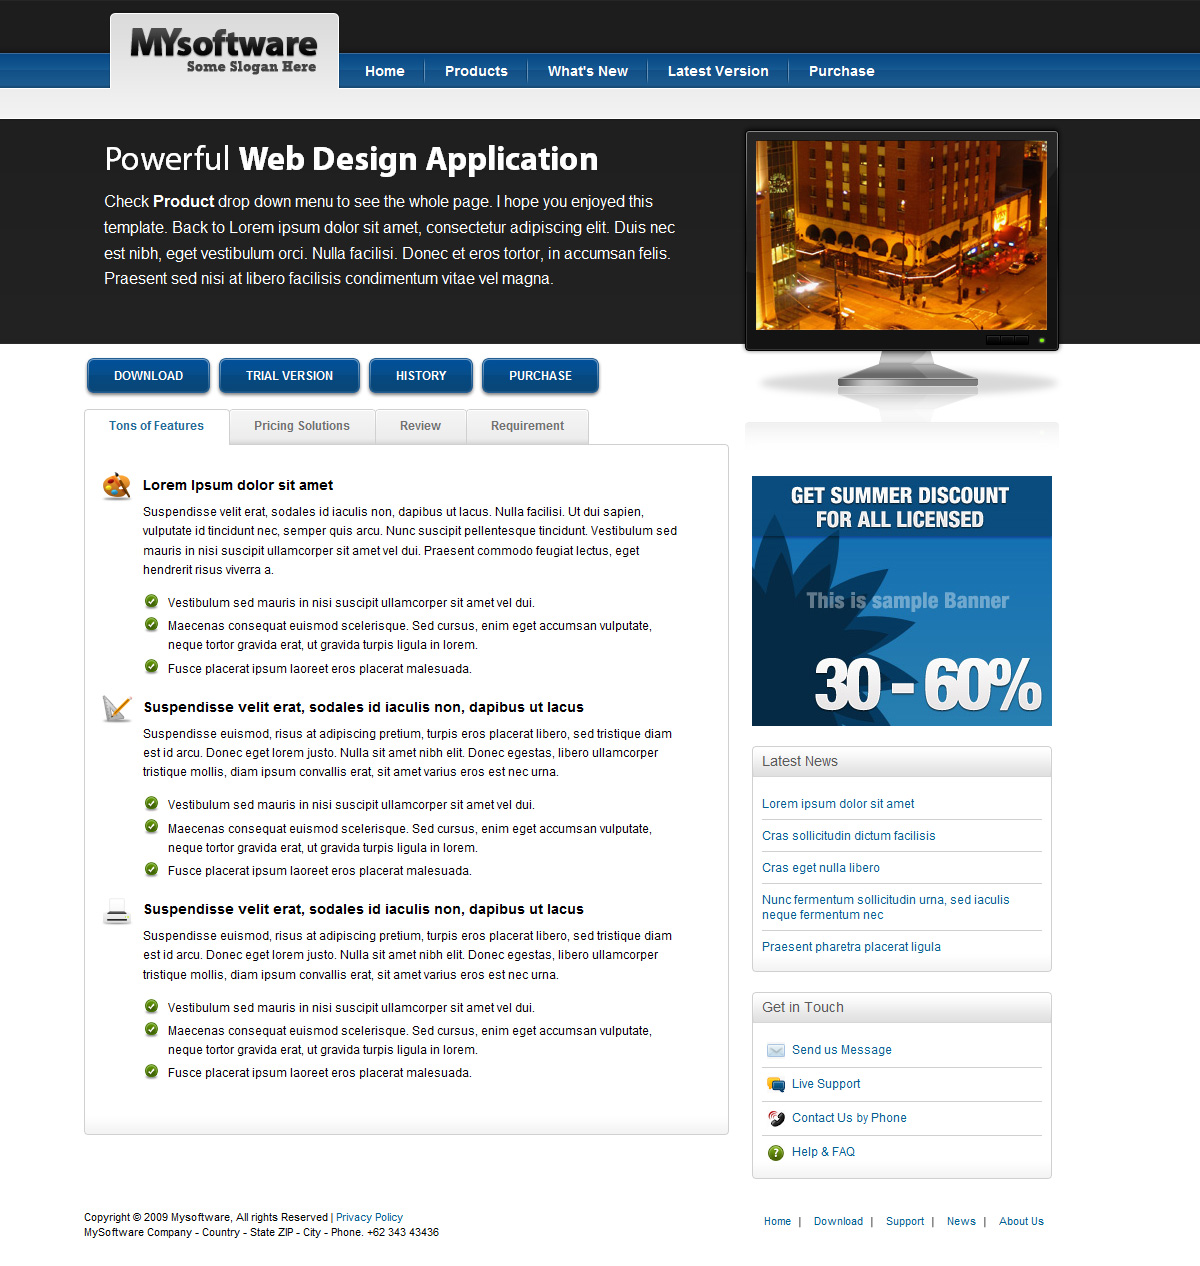 Clean Blue & Black Mac Style Software Template - Clean Blue & Black Mac Style Software Template - About Us Page